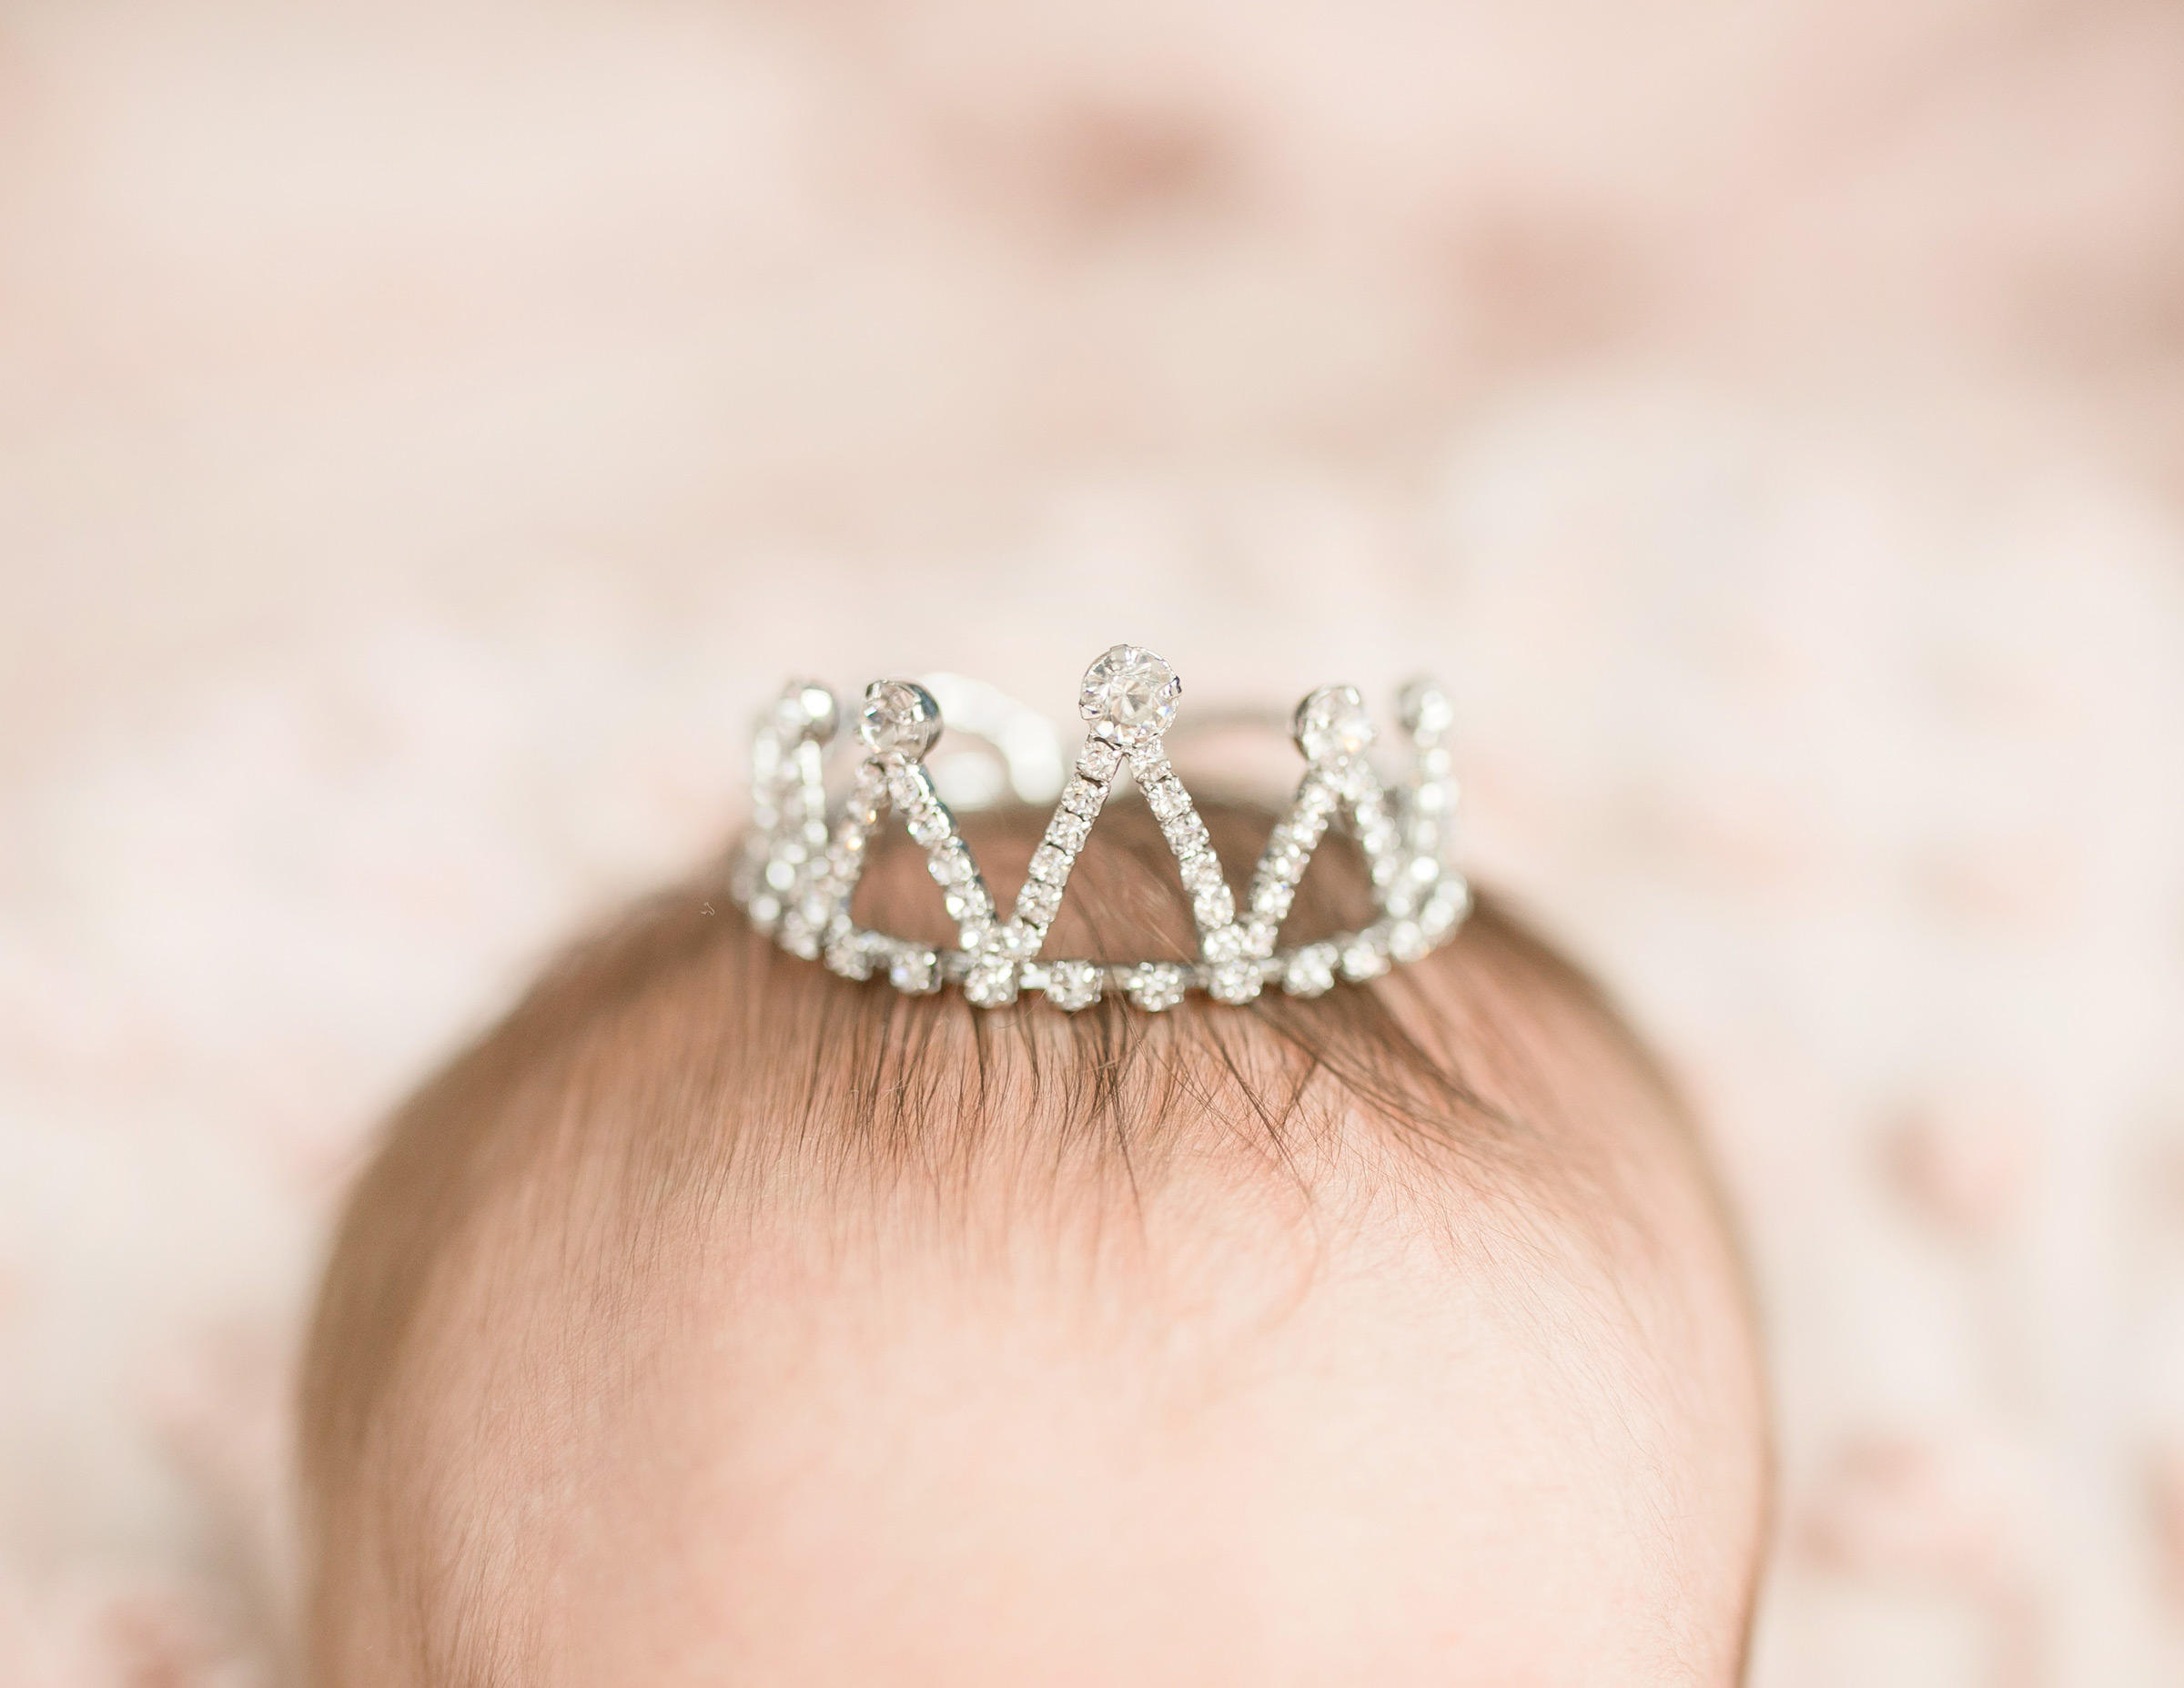 katherine ives photography lifestyle savannah lifestyle newborn photography